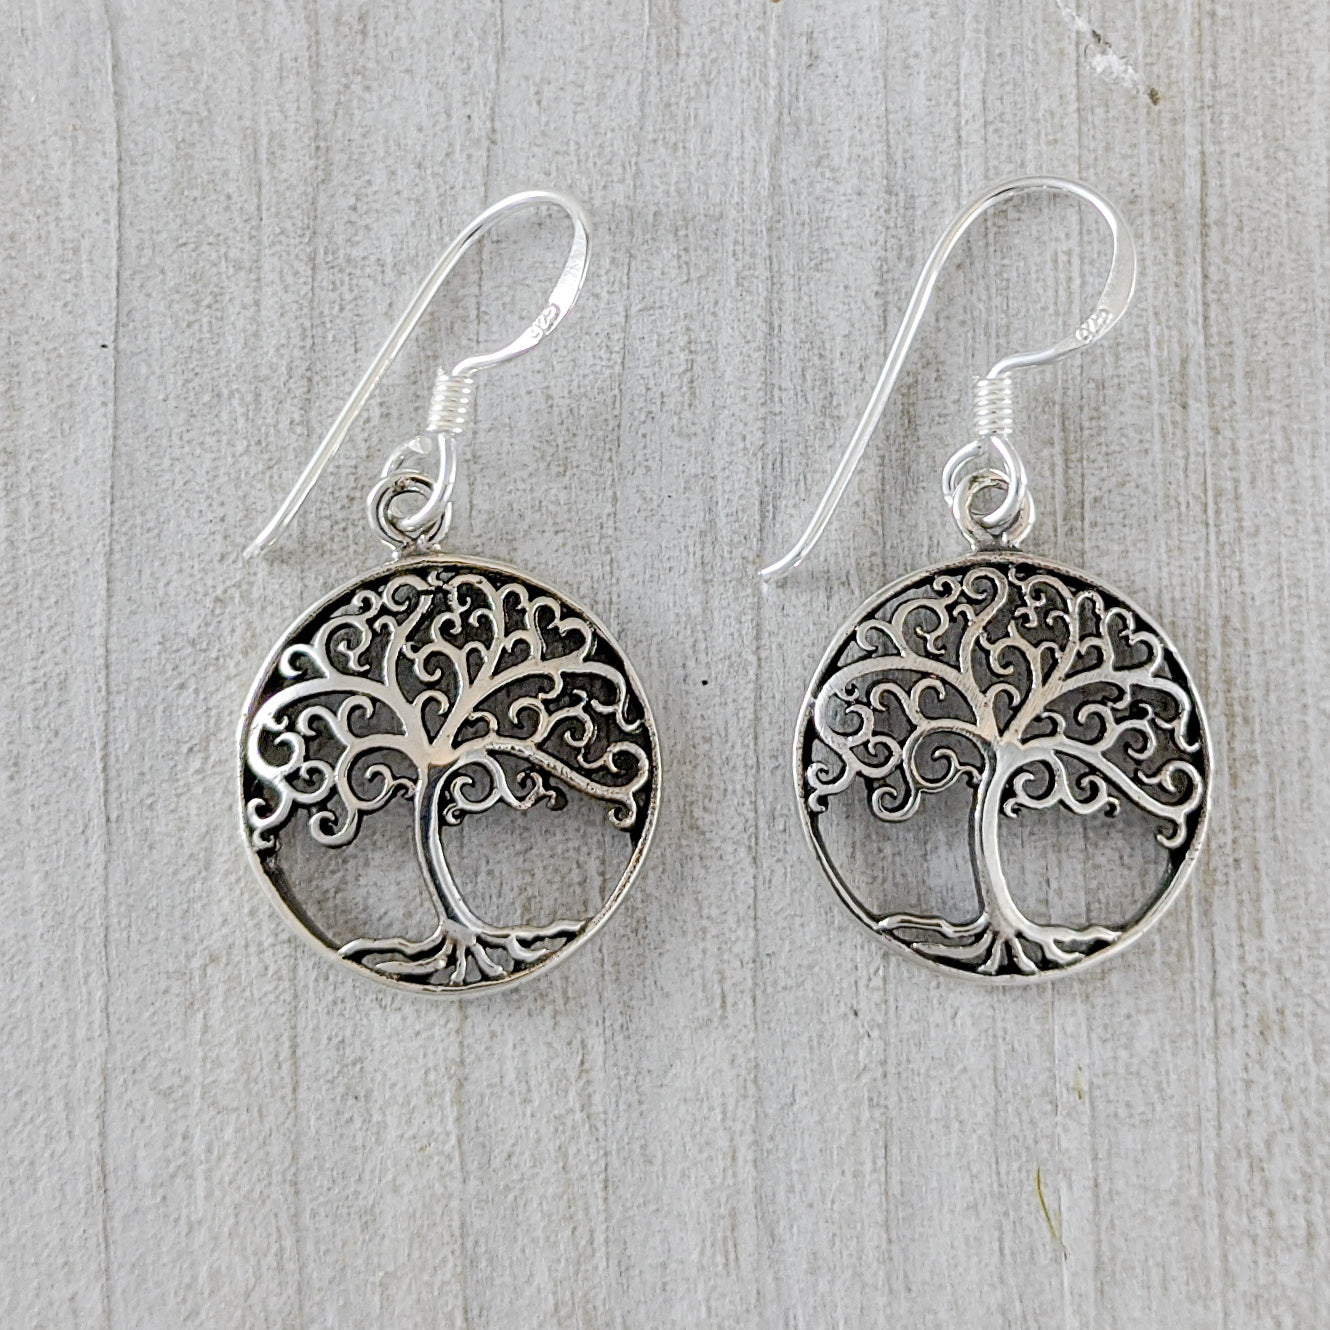 Tree of Life Earring with Curled Branches, Sterling Silver